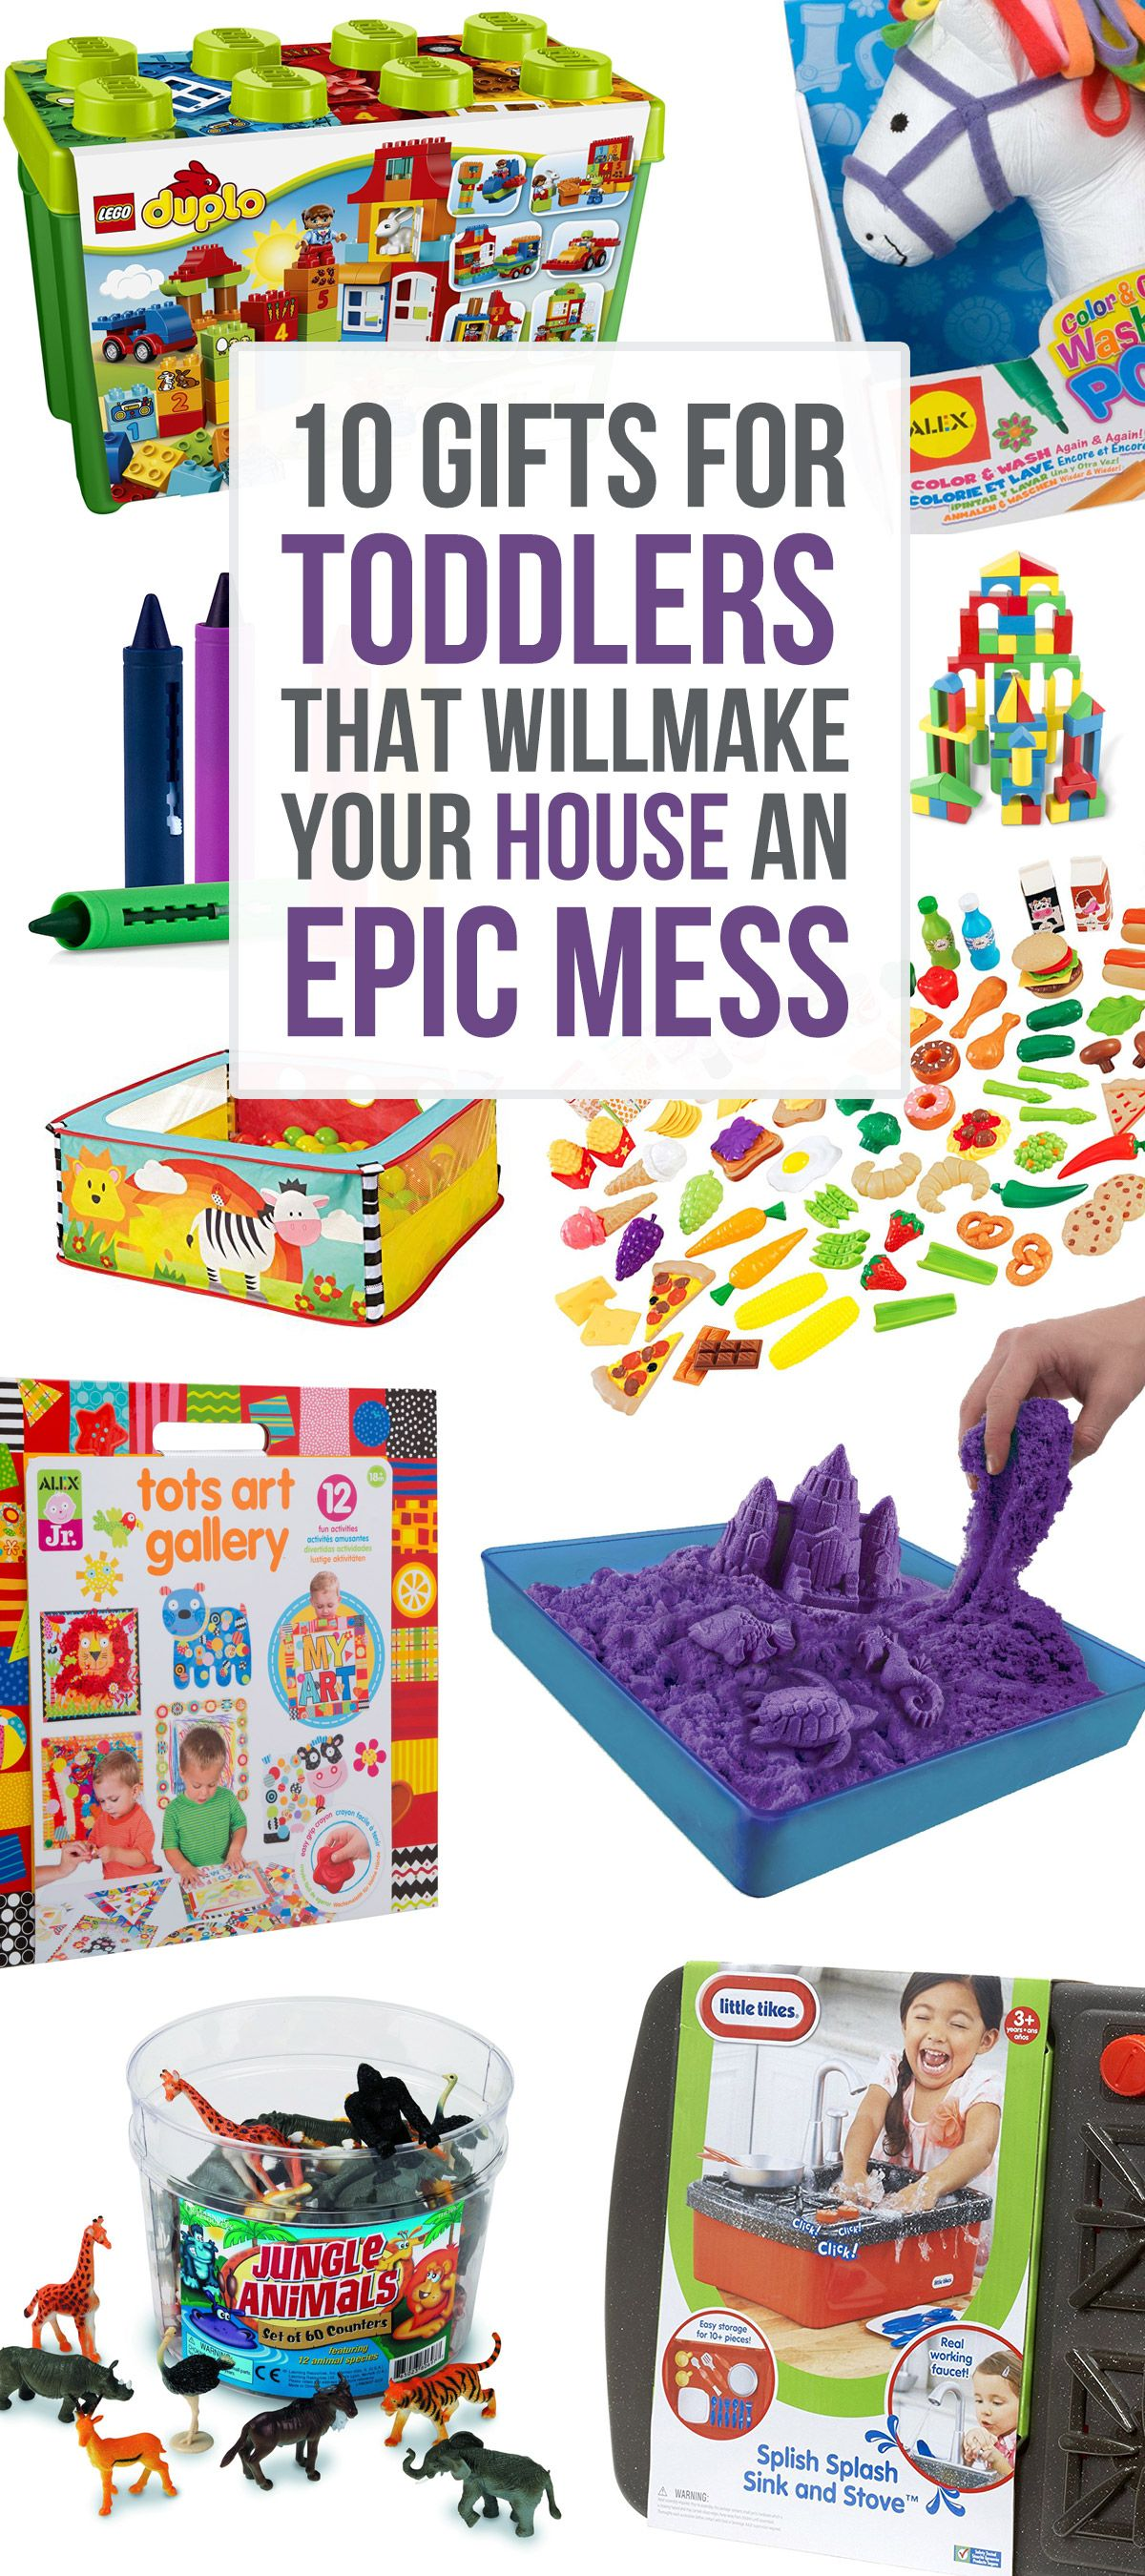 10 Gifts for Toddlers that Will Make Your House an Epic Mess